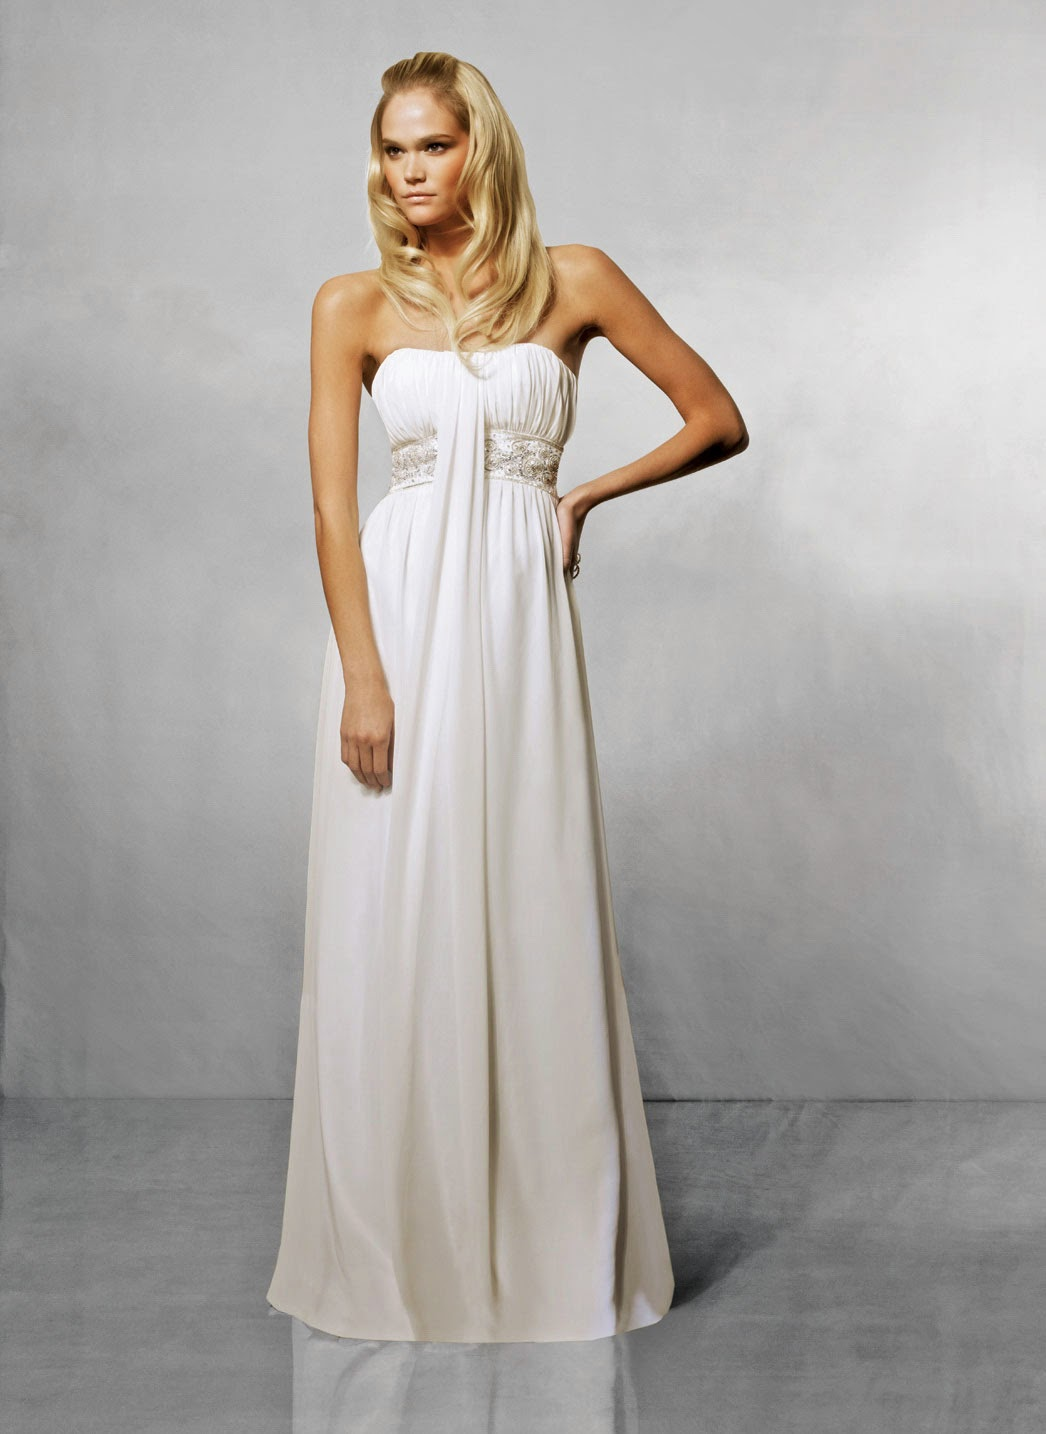 Designer Simple Maternity Wedding Dresses NYC Ideas